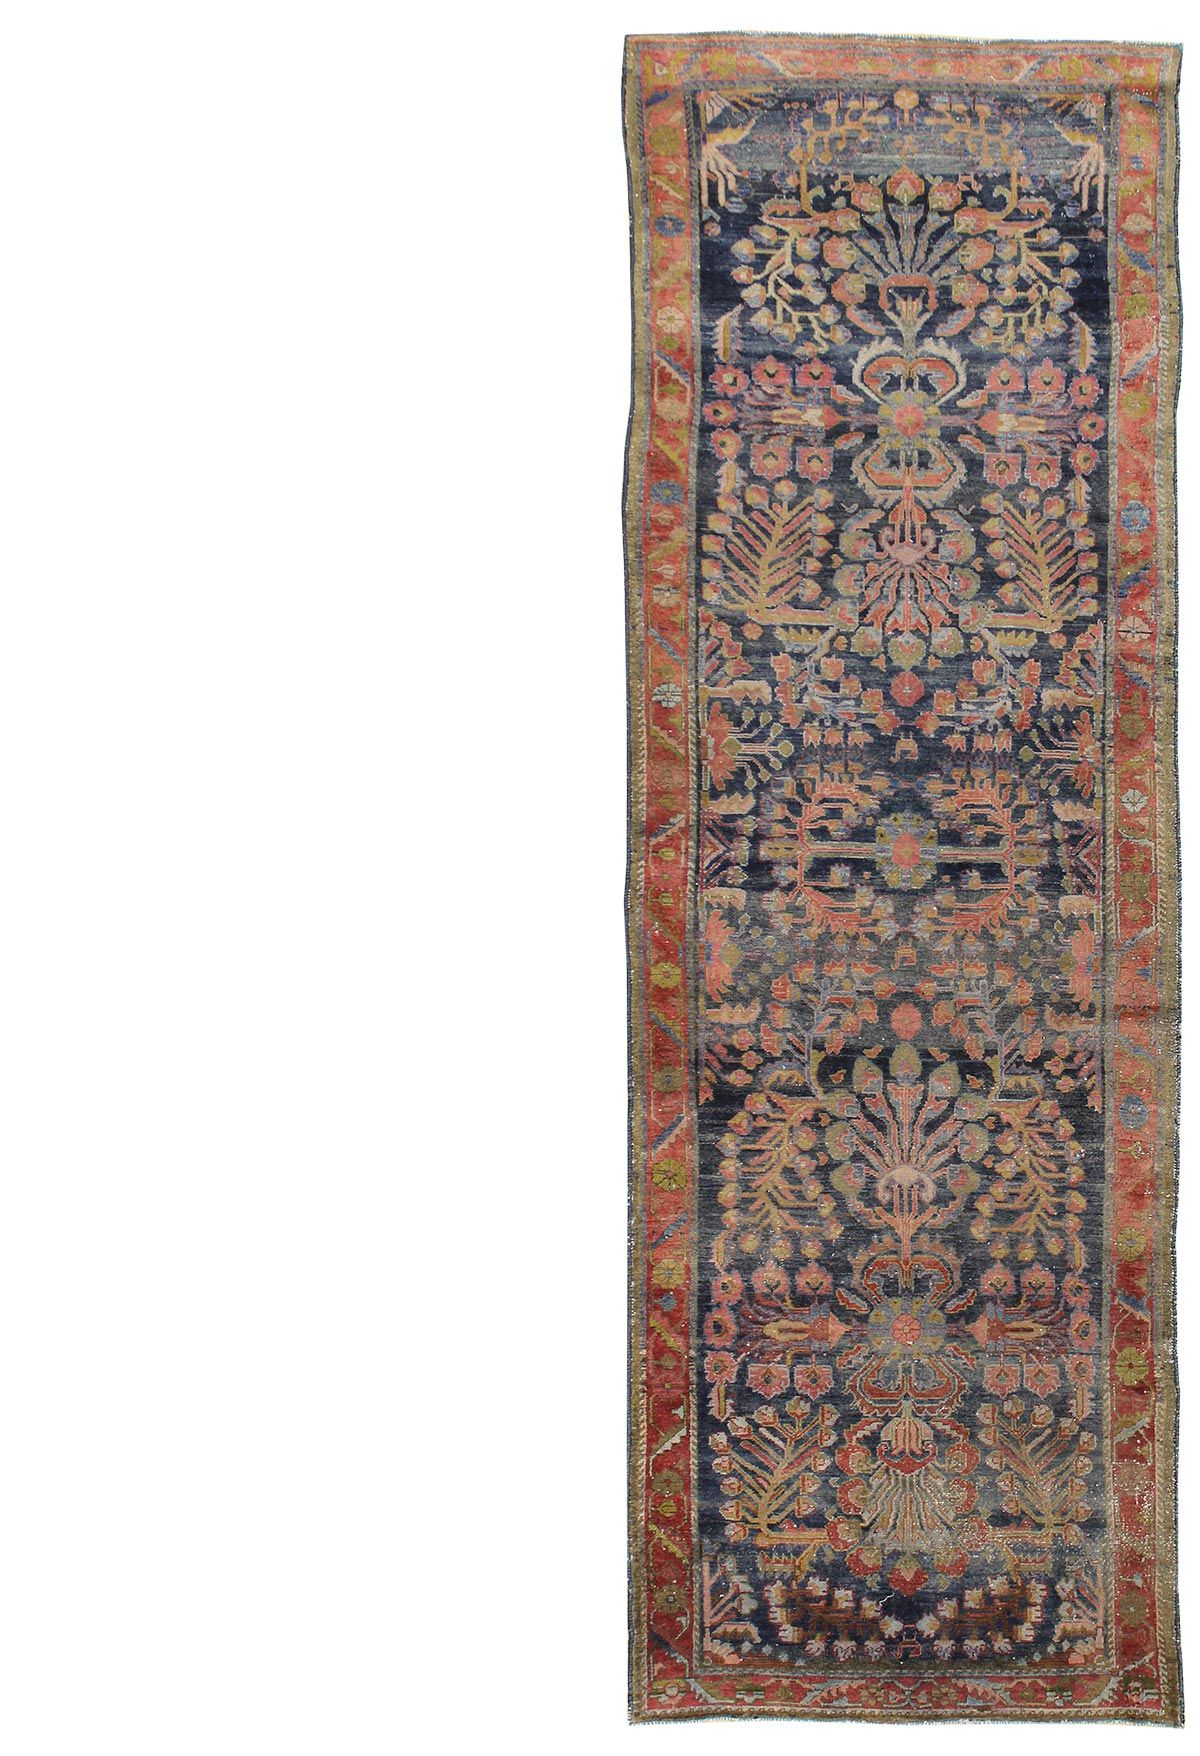 Oriental Carpet Runners By The Foot Wwwallaboutyouthnet